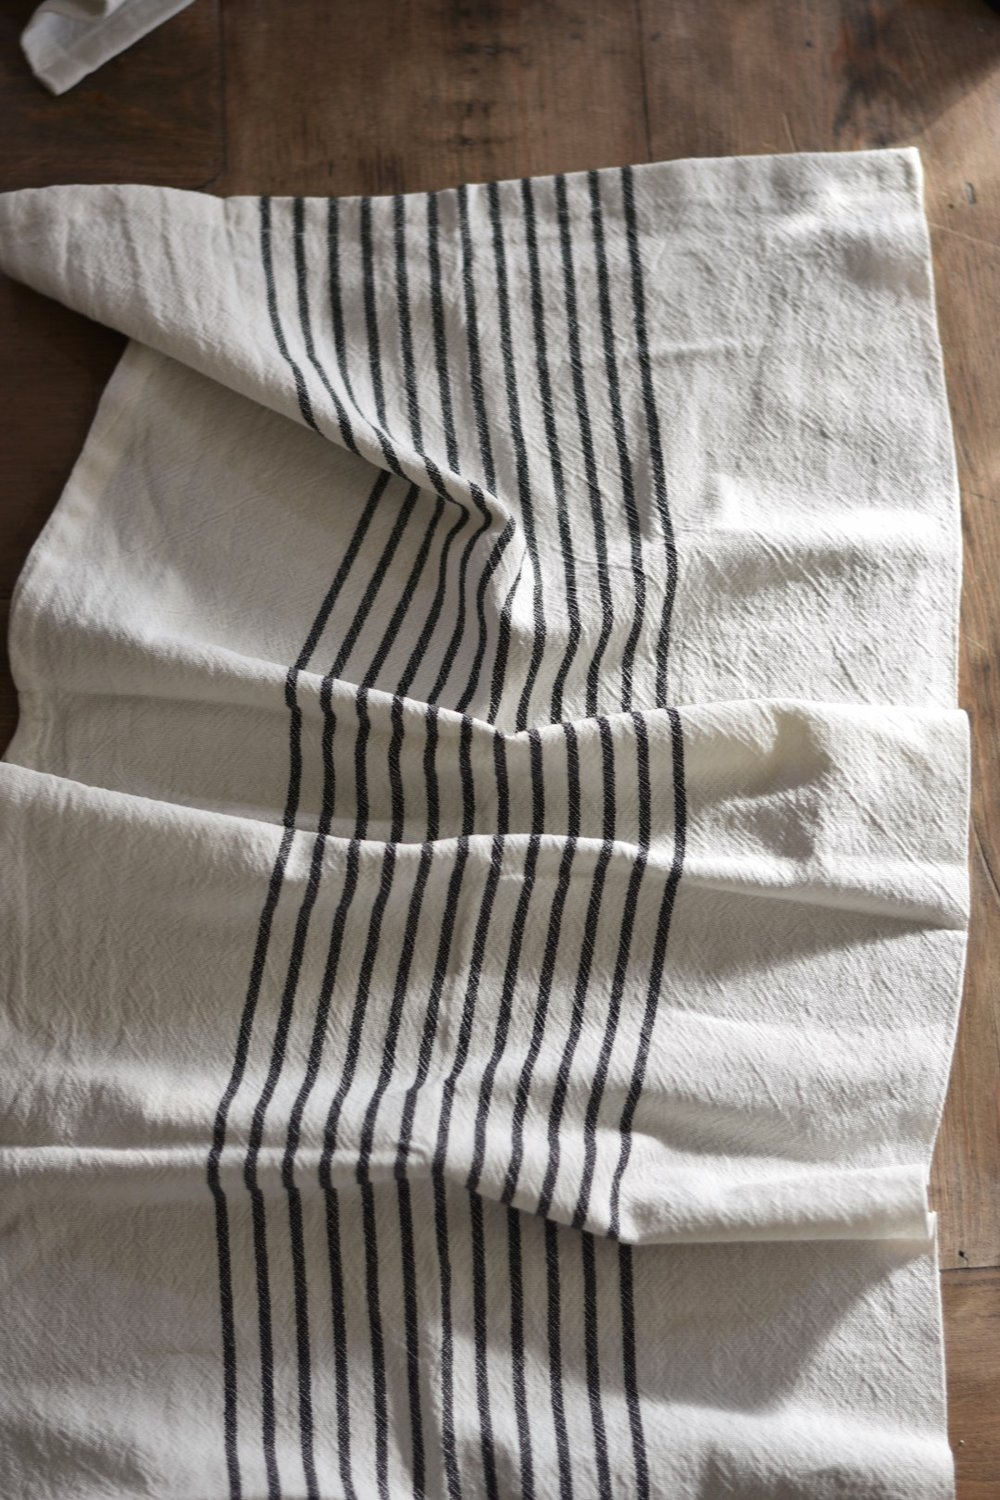 Handmade Cloth Napkins from a Flour Sack Towel